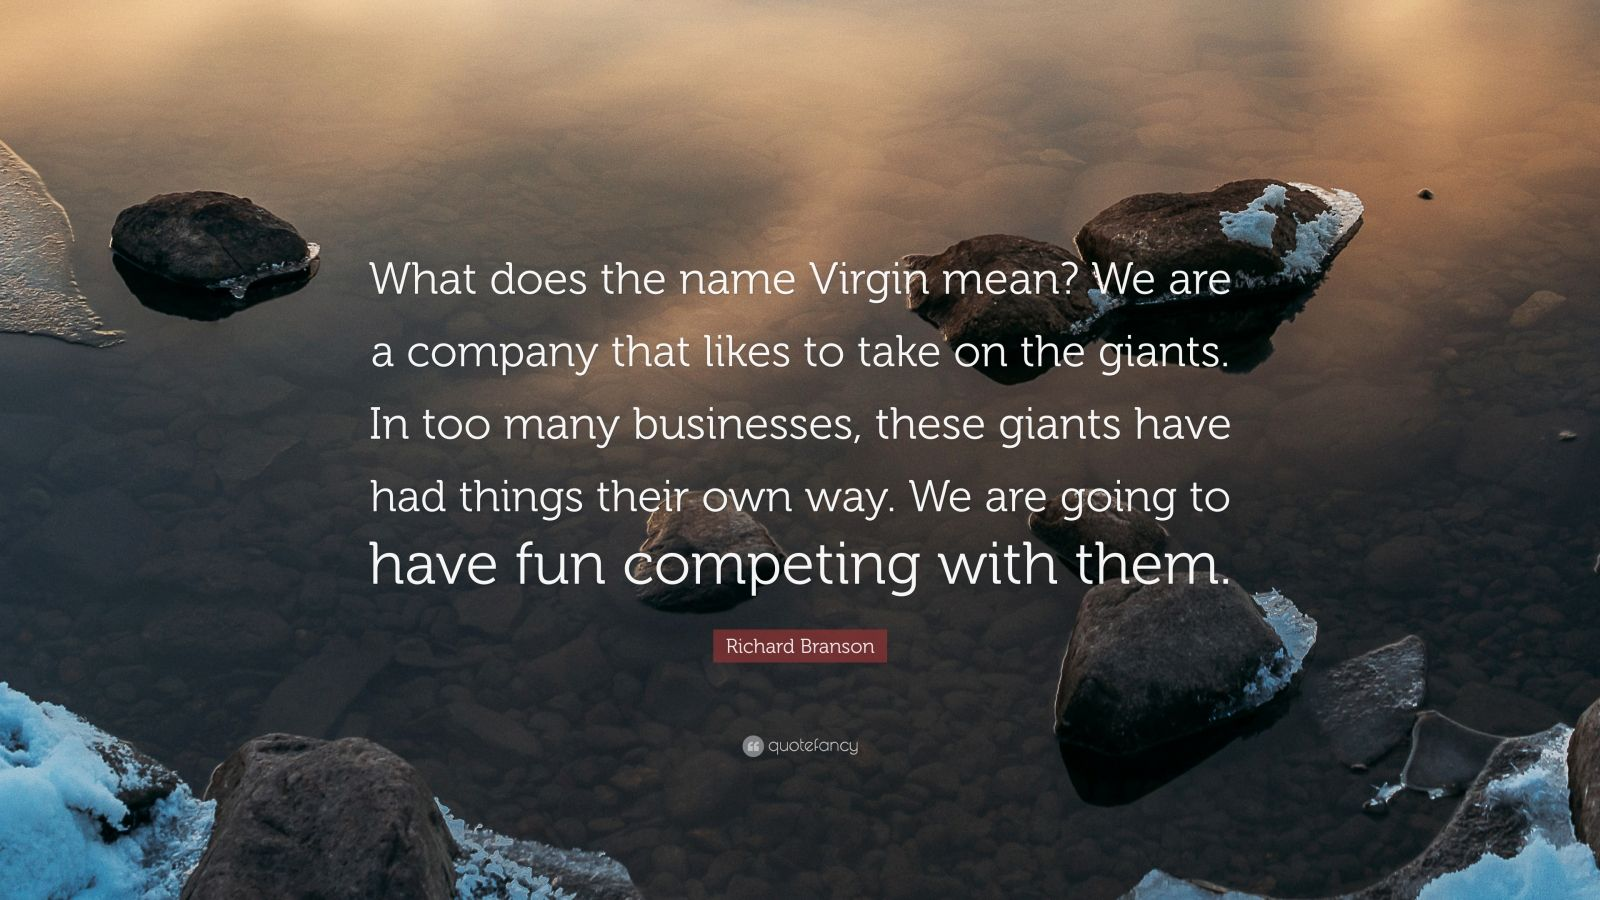 """Richard Branson Quote: """"What does the name Virgin mean? We are a company that likes to take on the giants. In too many businesses, these giants have had things their own way. We are going to have fun competing with them."""""""